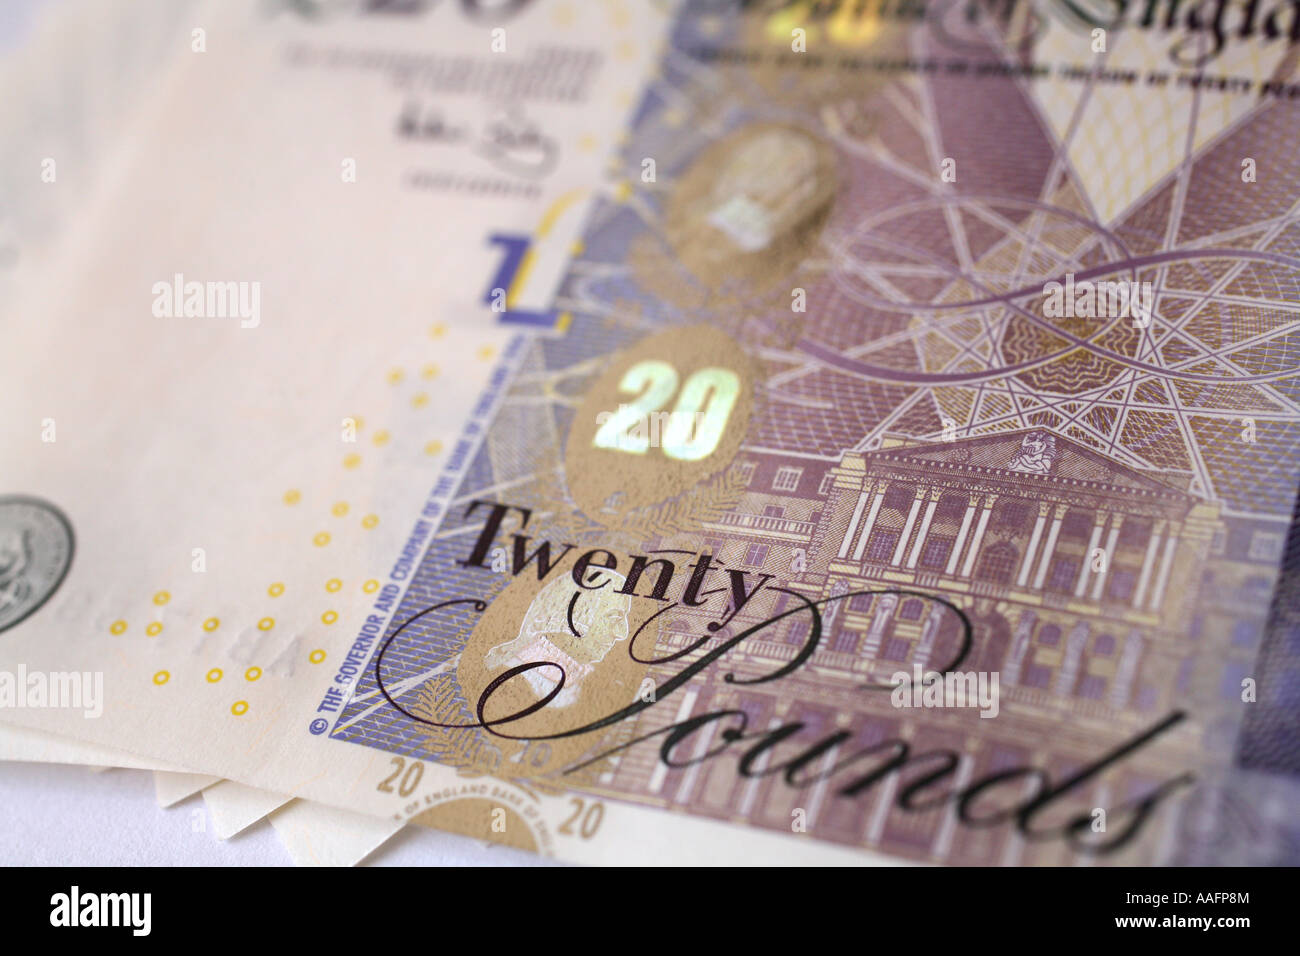 Bundle of the new Twenty pound note, 2007 - Stock Image